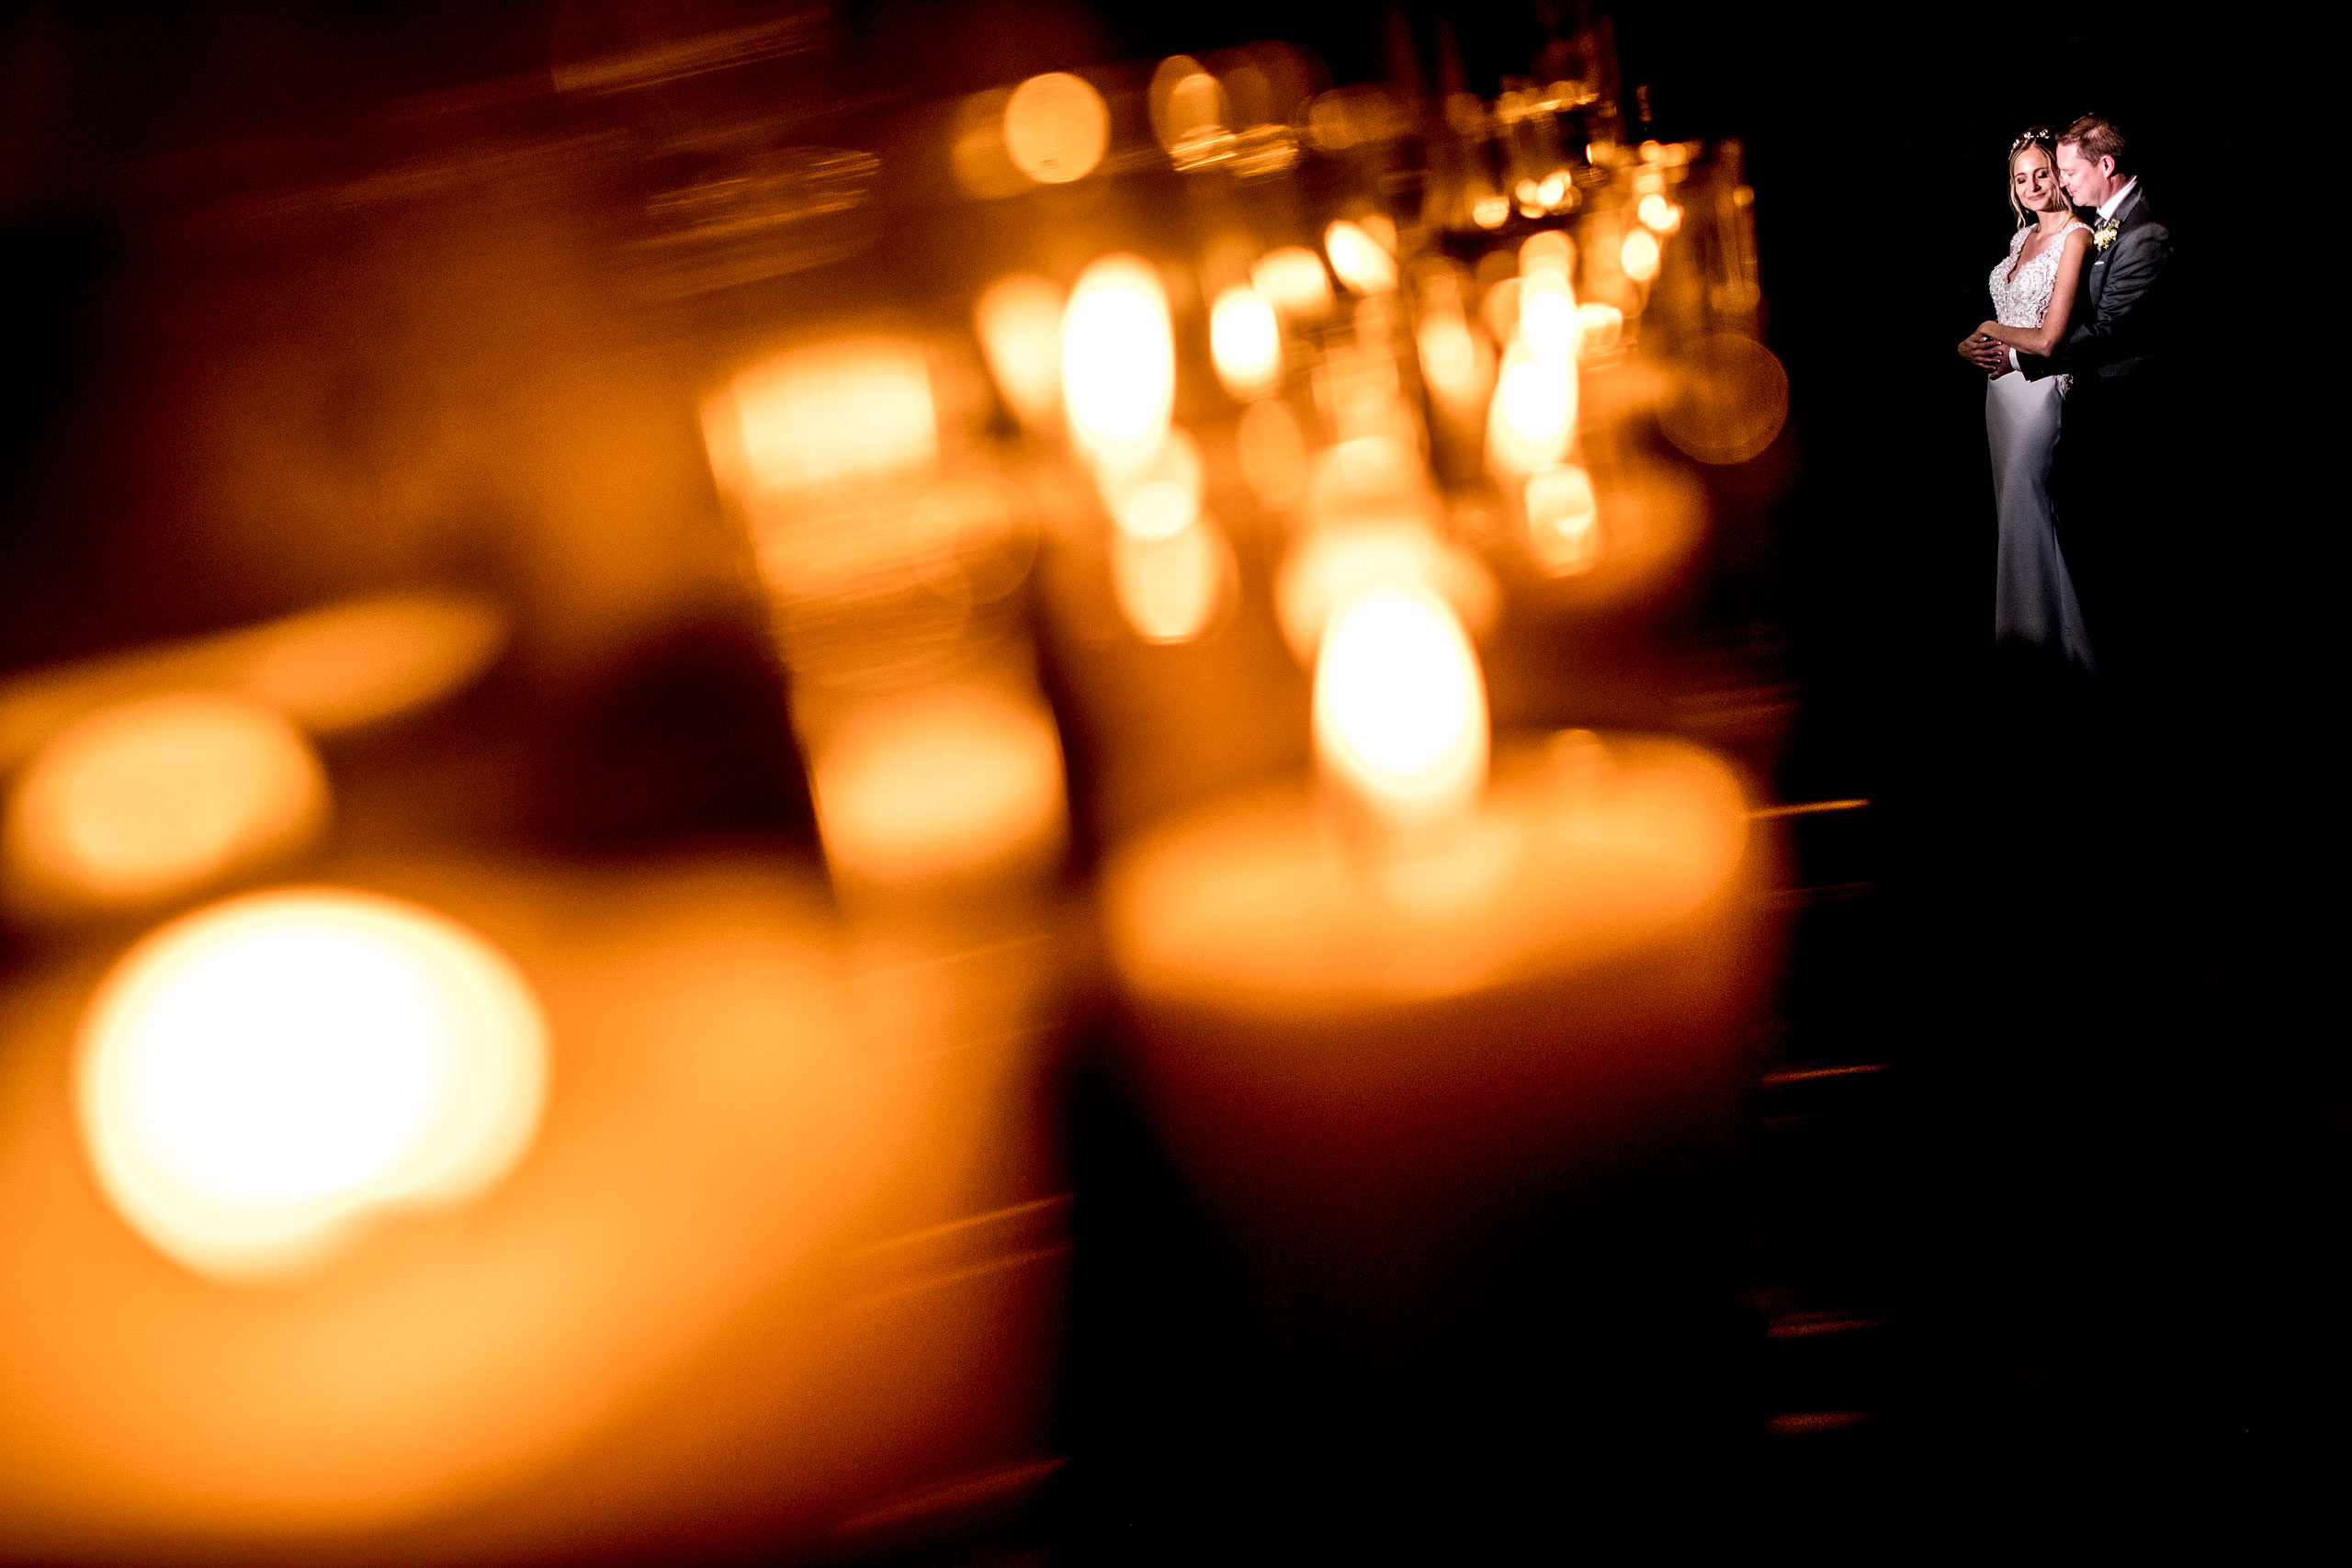 bride and groom embracing in front of a row of lit candles